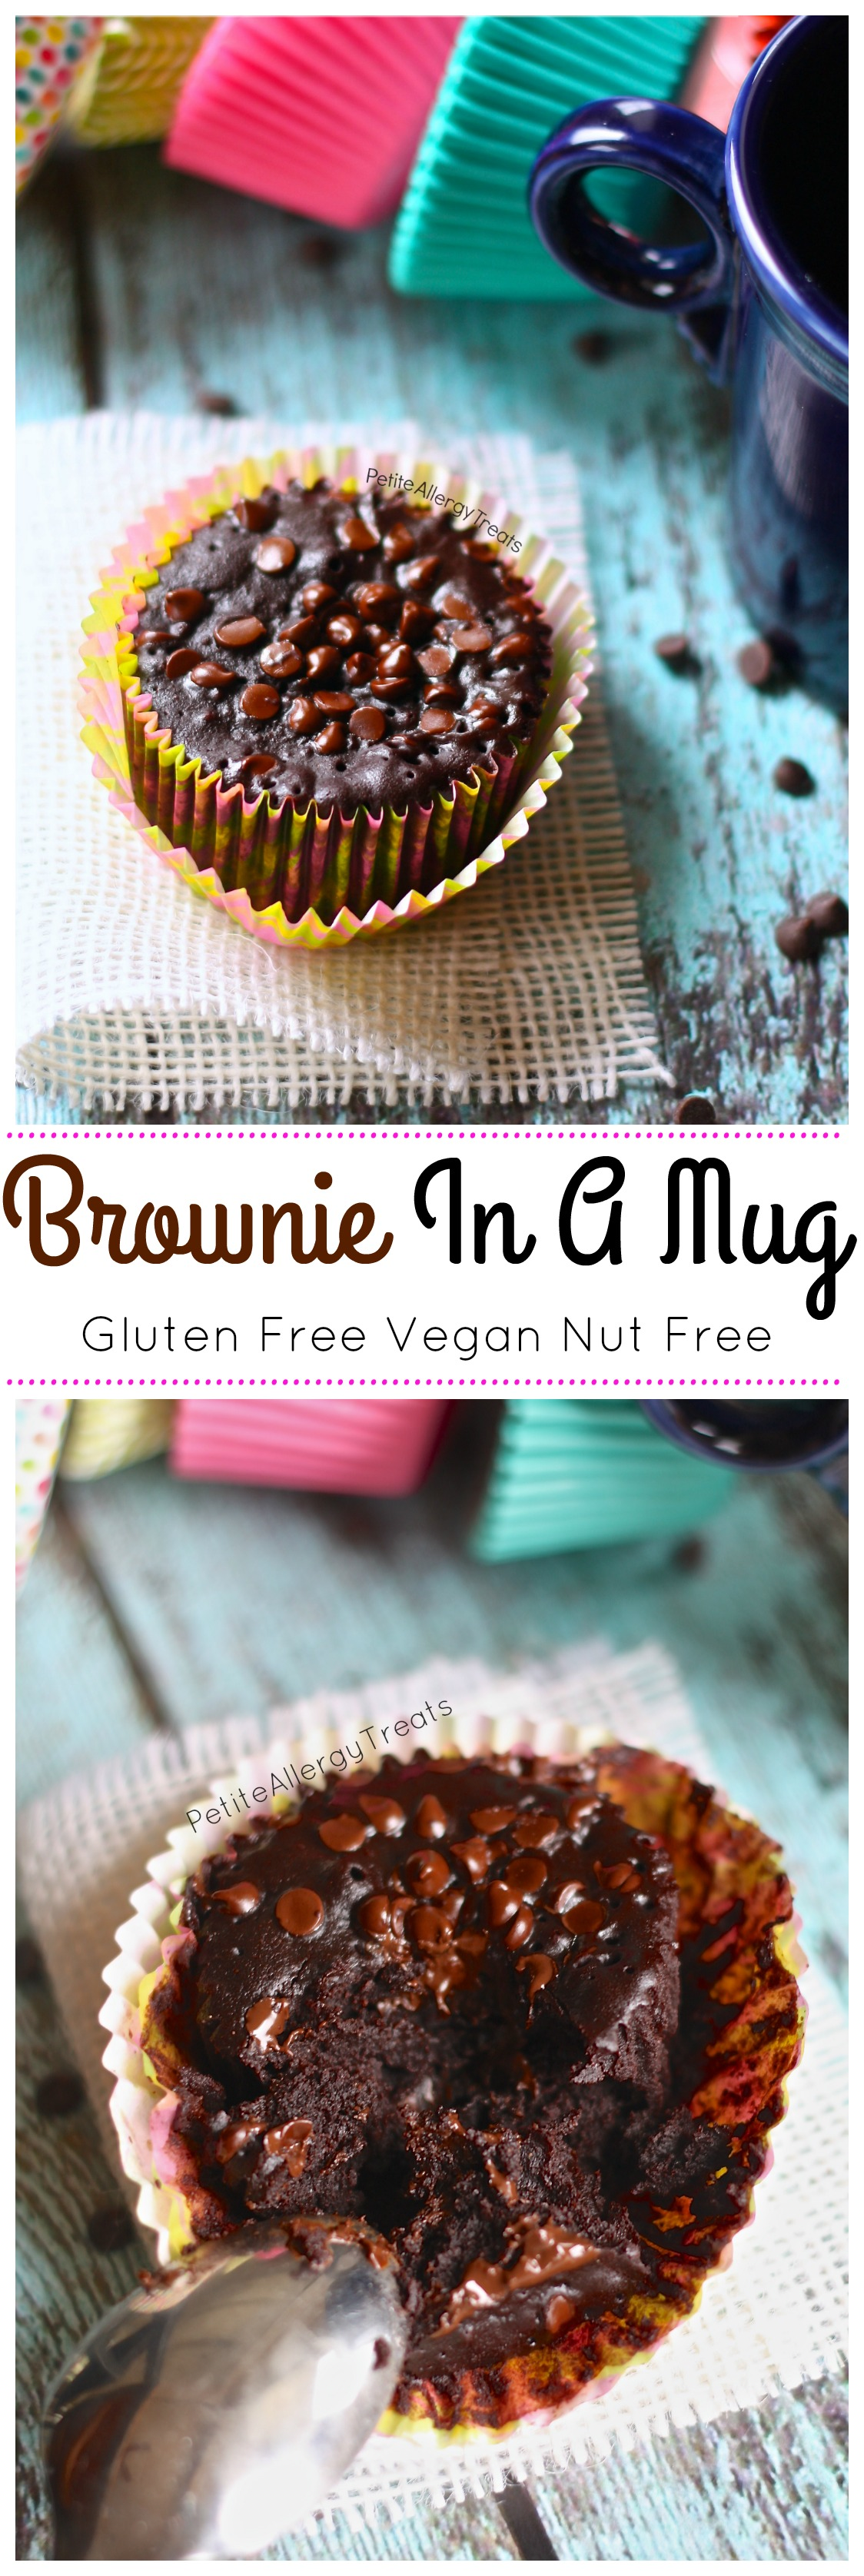 Brownie In A Mug (Gluten Free Vegan) -Easy single brownie, warm every time from the microwave!